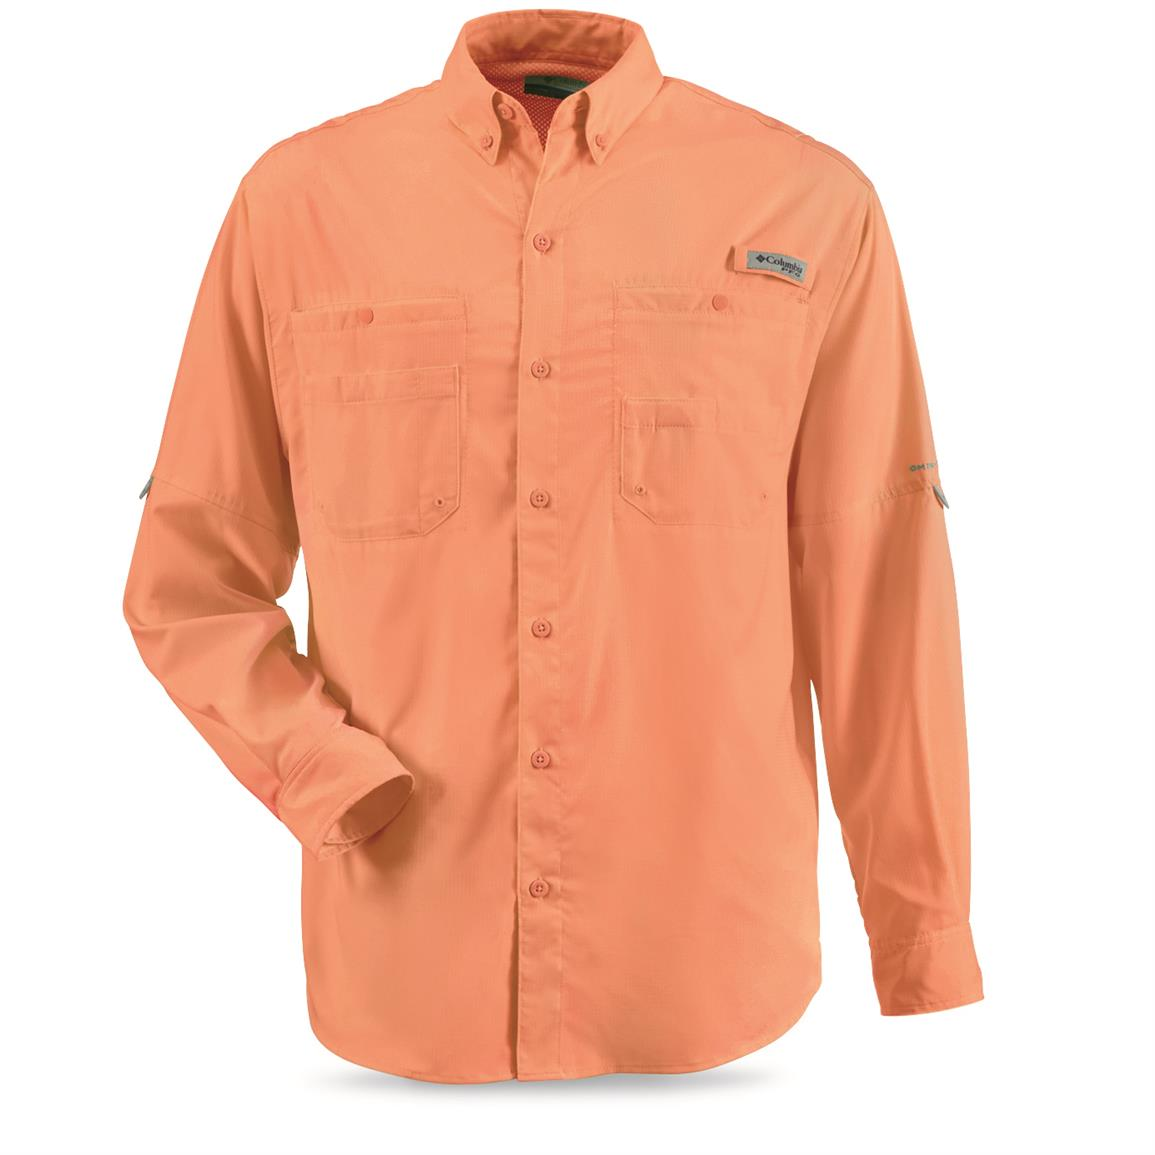 Columbia Men's PFG Tamiami II Long-Sleeve Shirt, Bright Peach